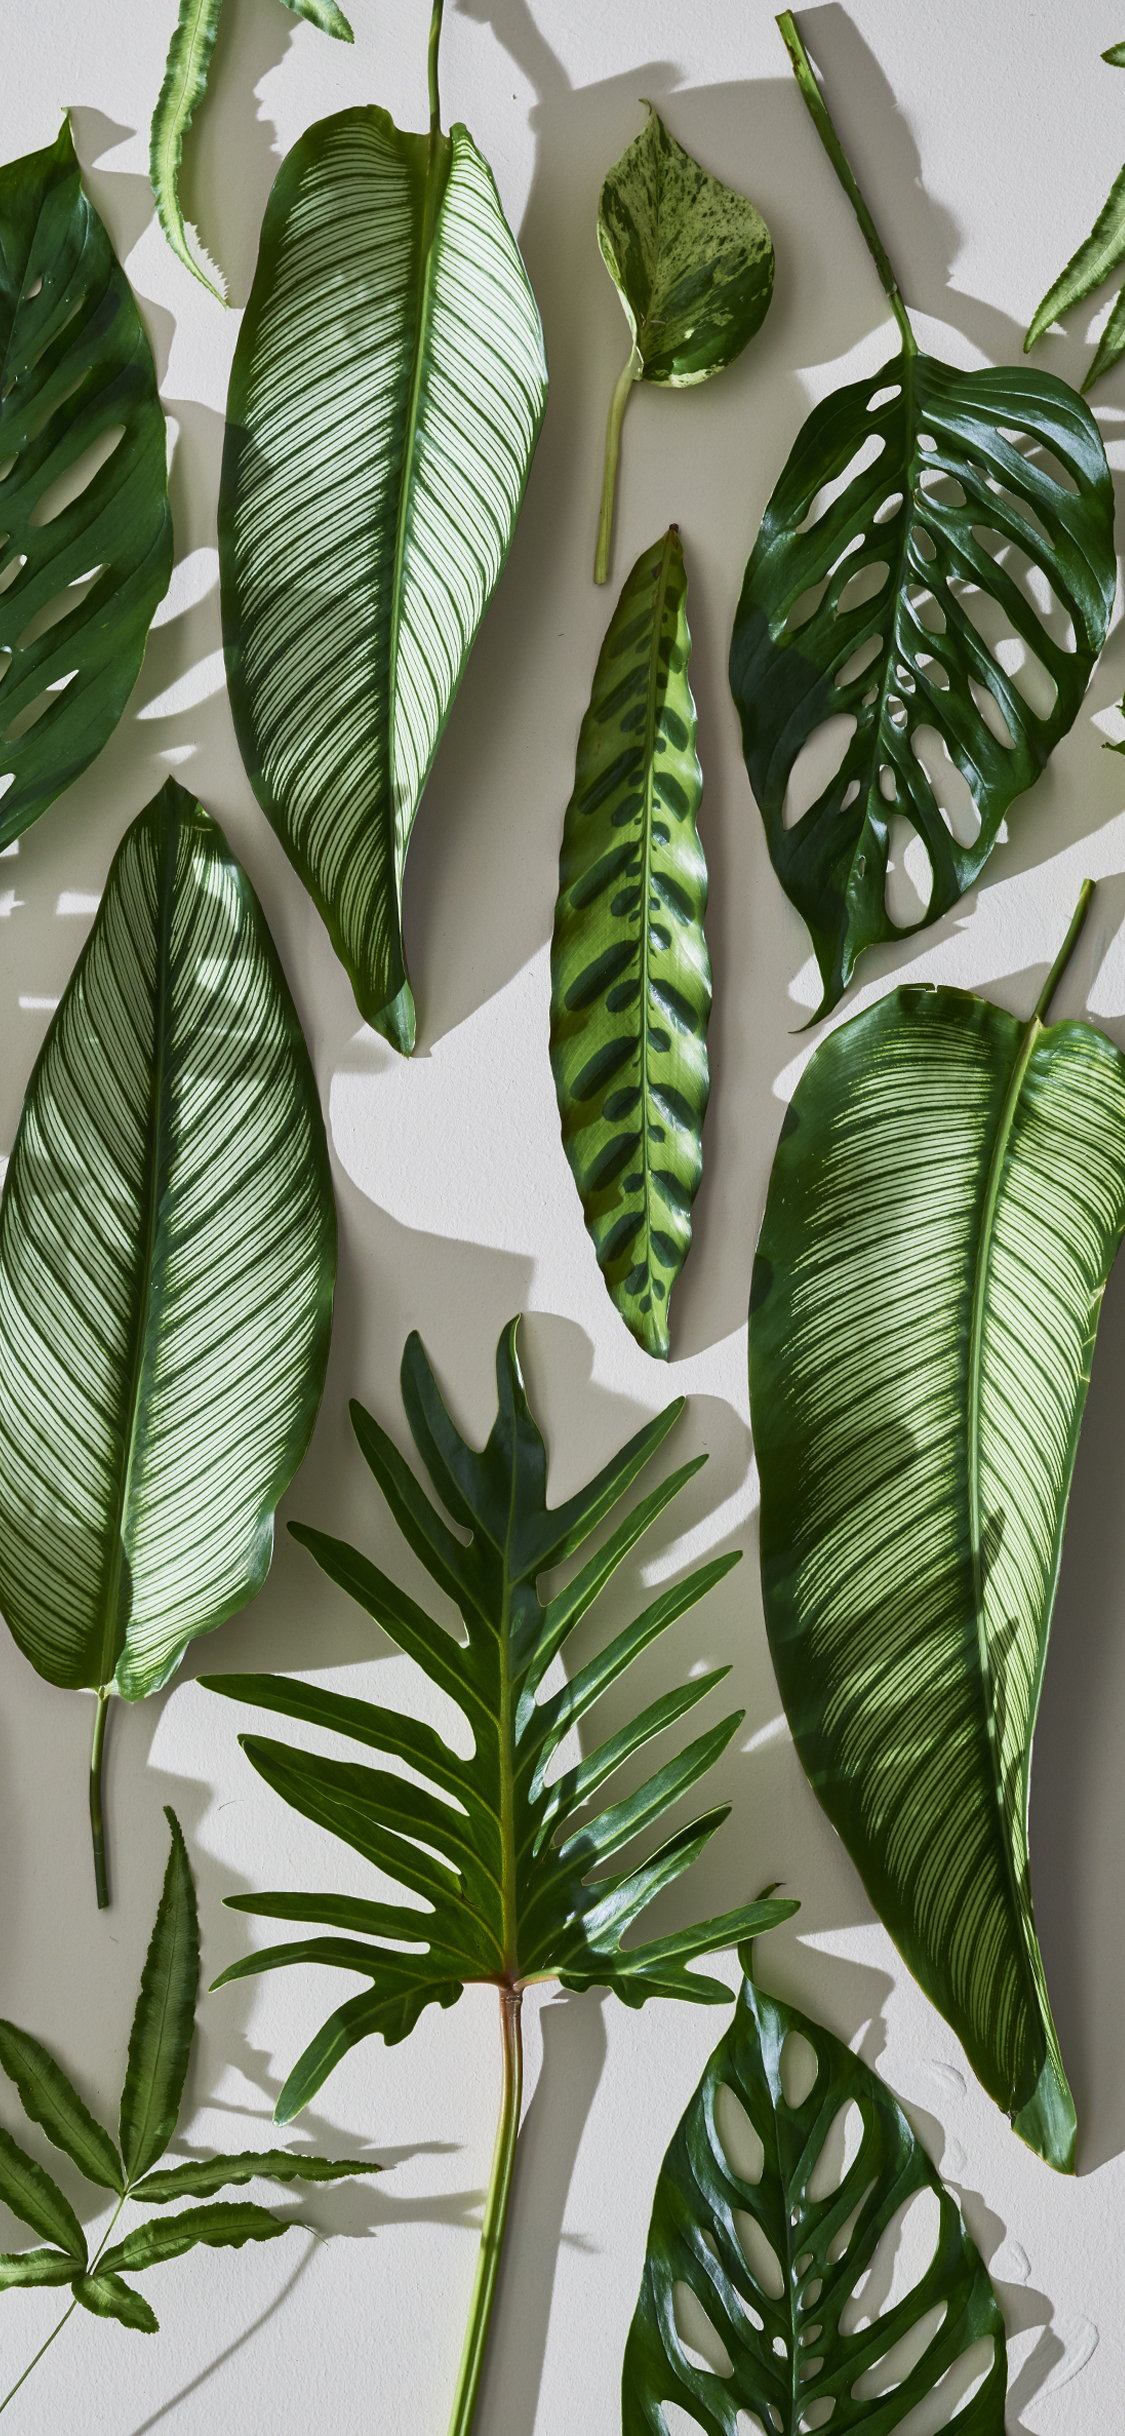 Black And White Wallpaper Decor Freshen Up With This Tropical Leaf Mobile Wallpaper